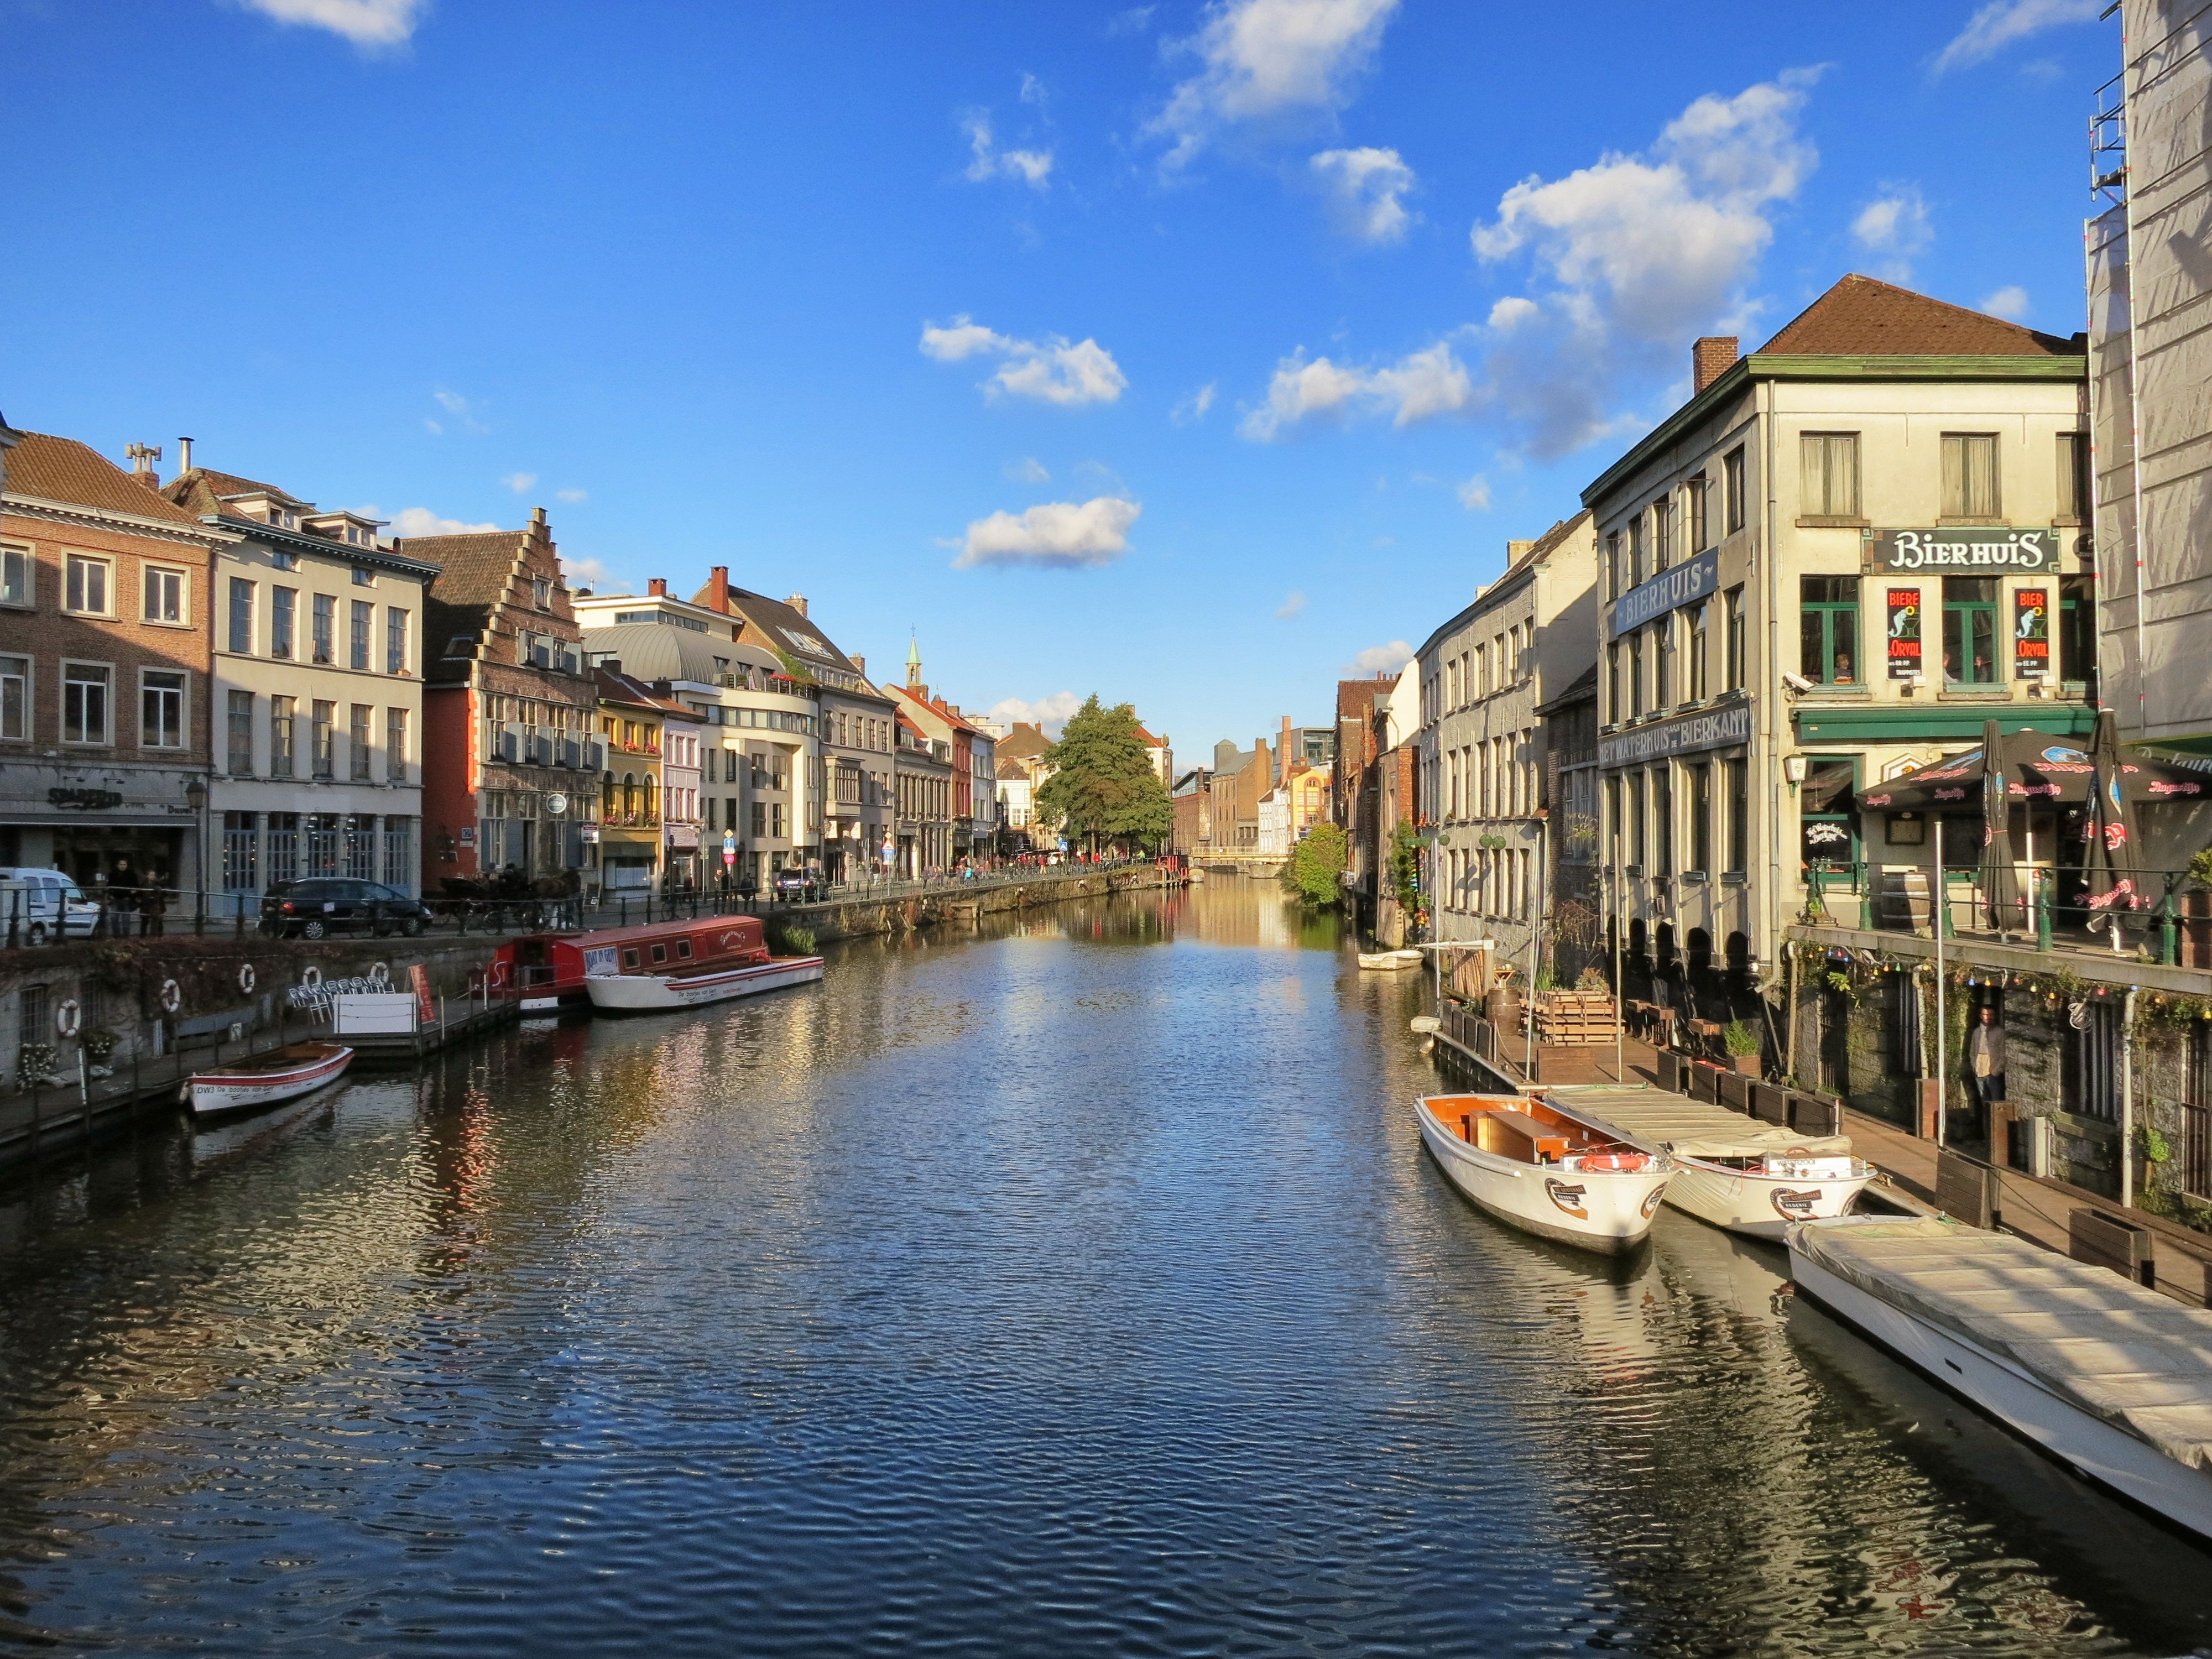 Ghent is an oftenoverlooked destination for travelers